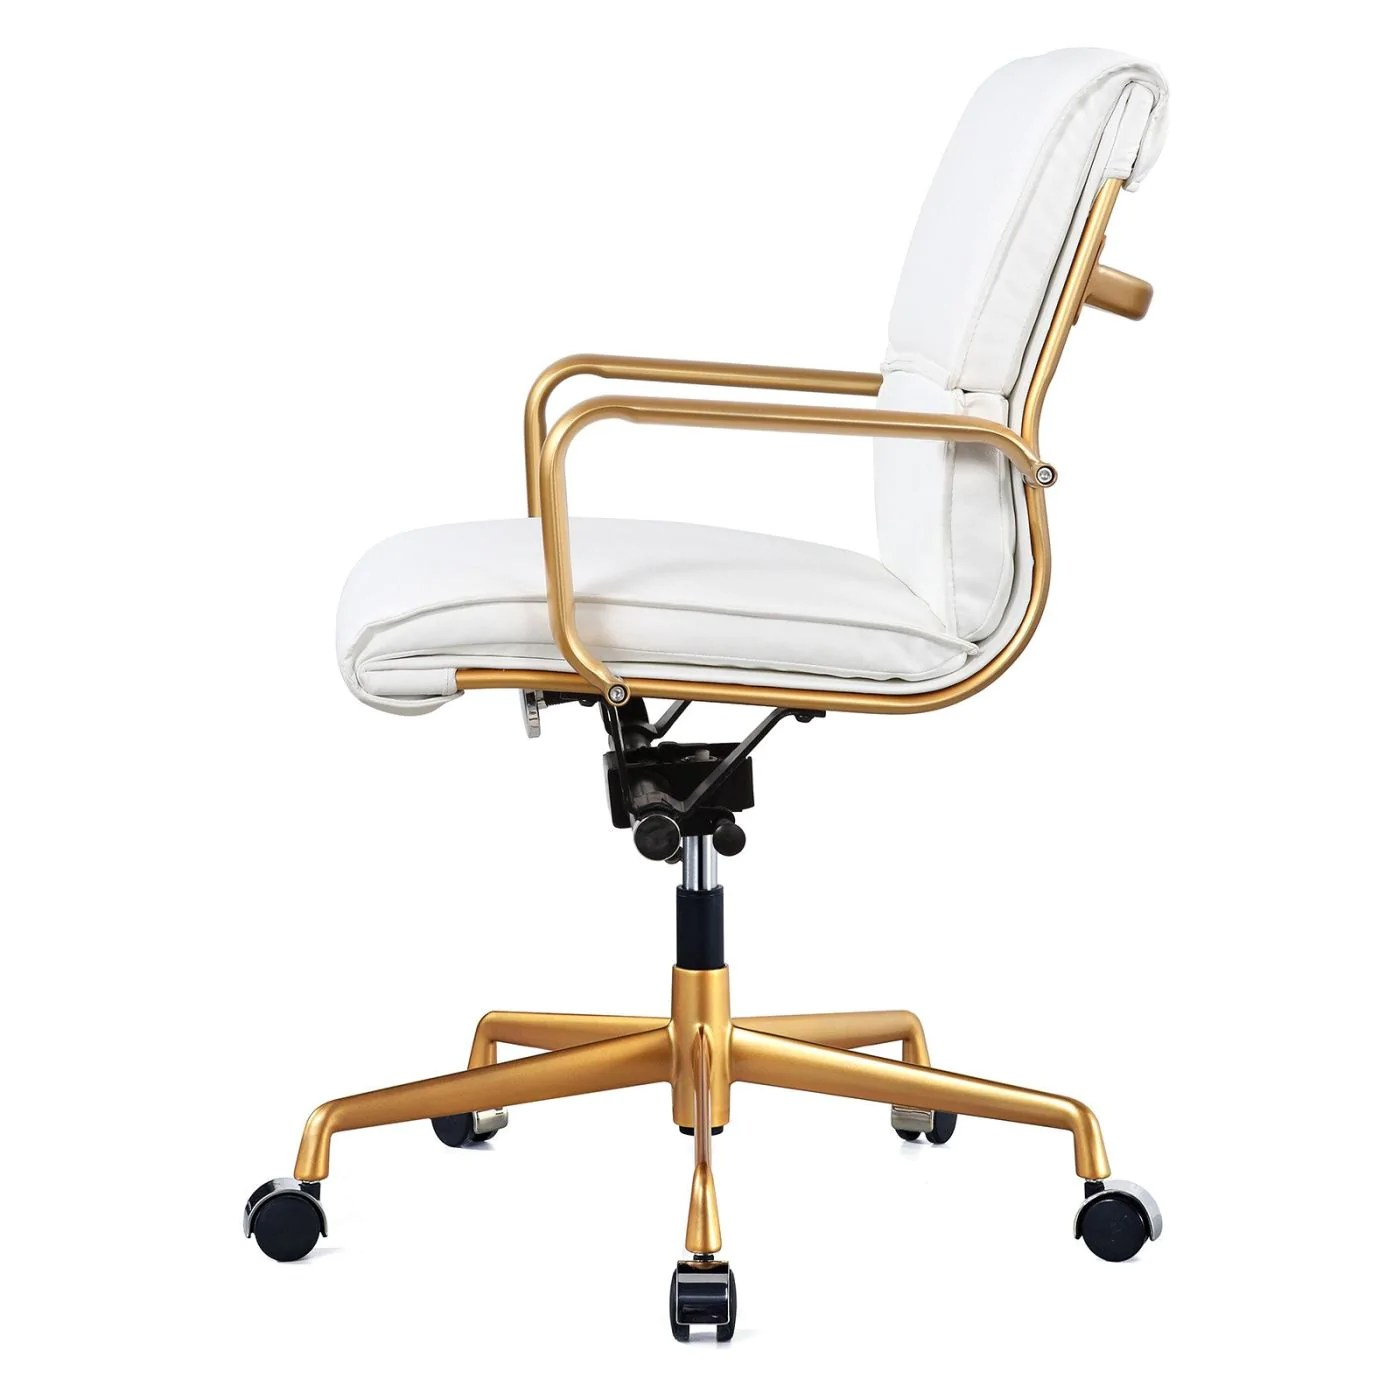 Dorado Office Chair Meelano 330 Gd Whi Office Chair In Gold And White Vegan